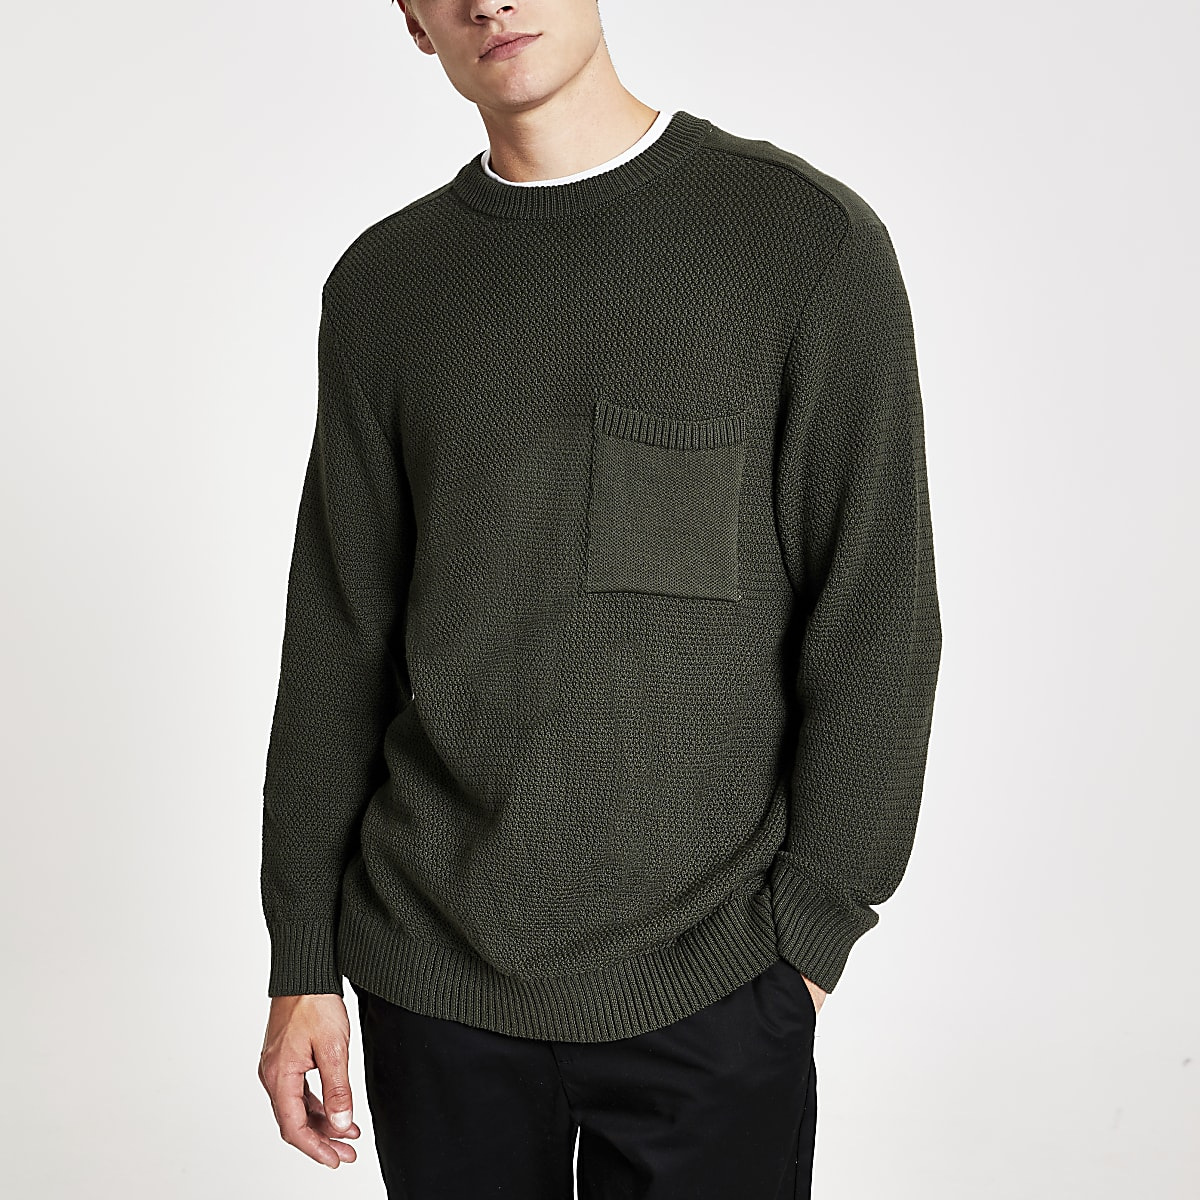 Green textured knit regular fit jumper